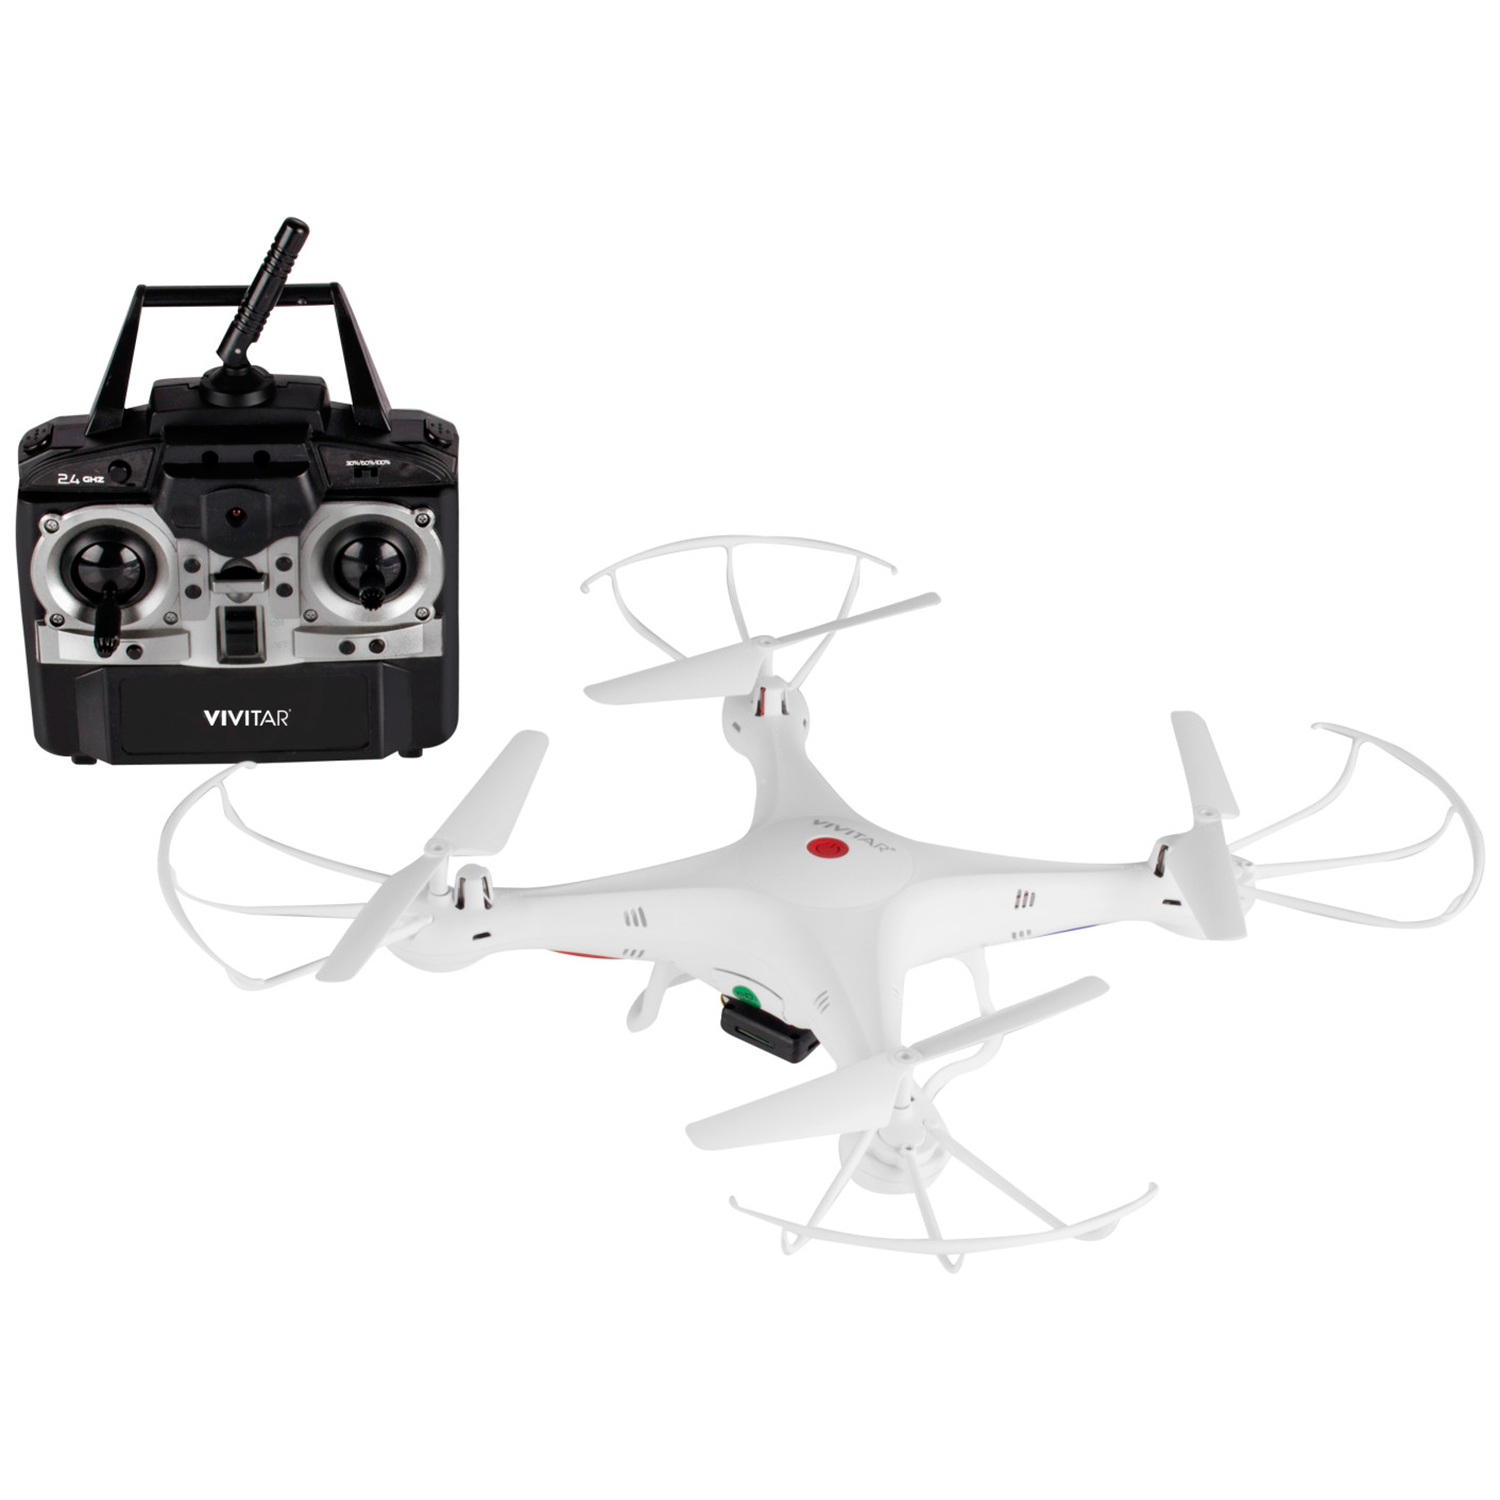 Vivitar 2.4 GHz Aerial Drone with HD Camera White by Vivitar